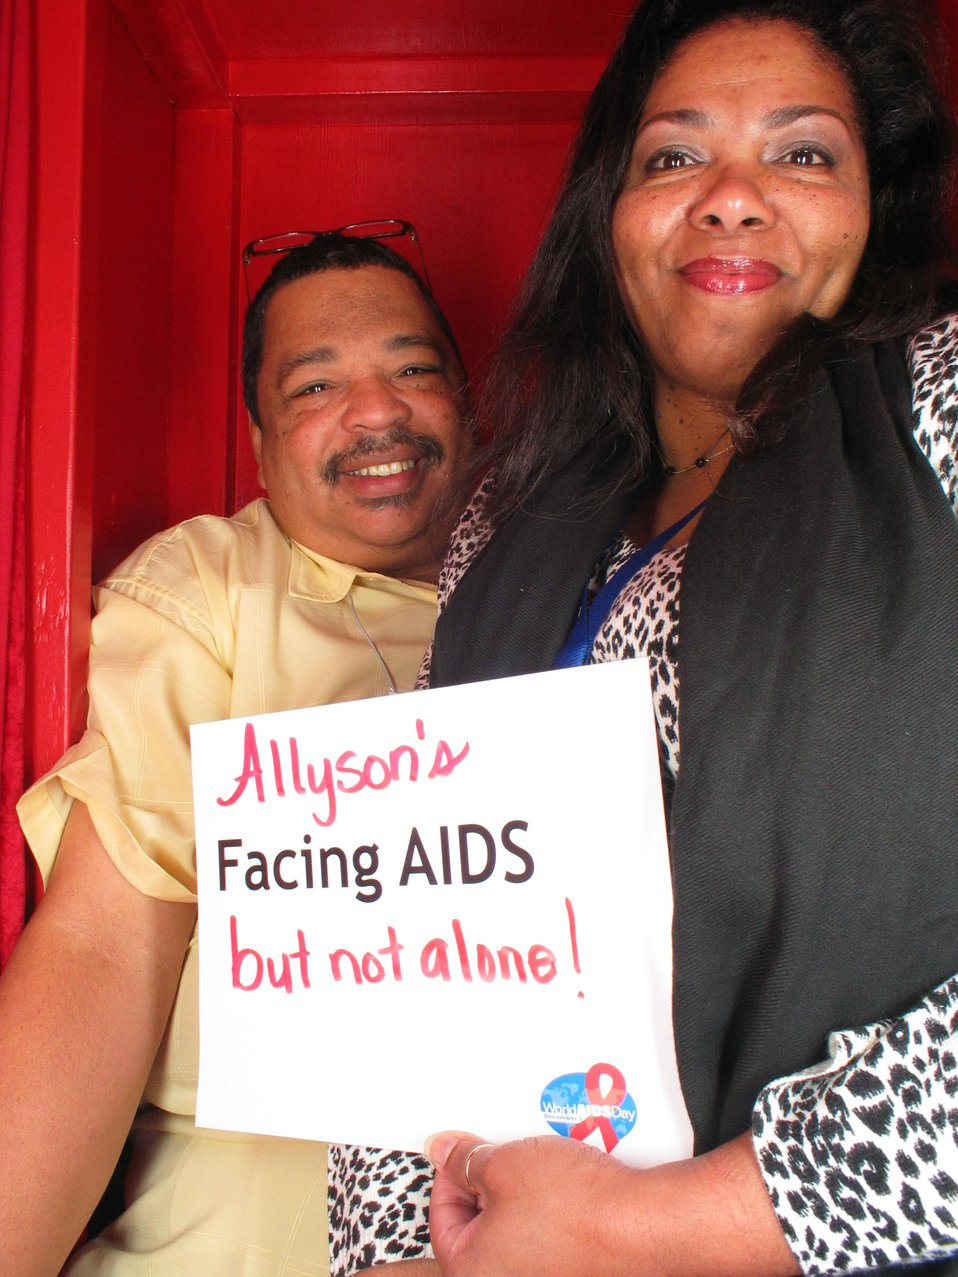 Allyson's Facing AIDS but not alone!